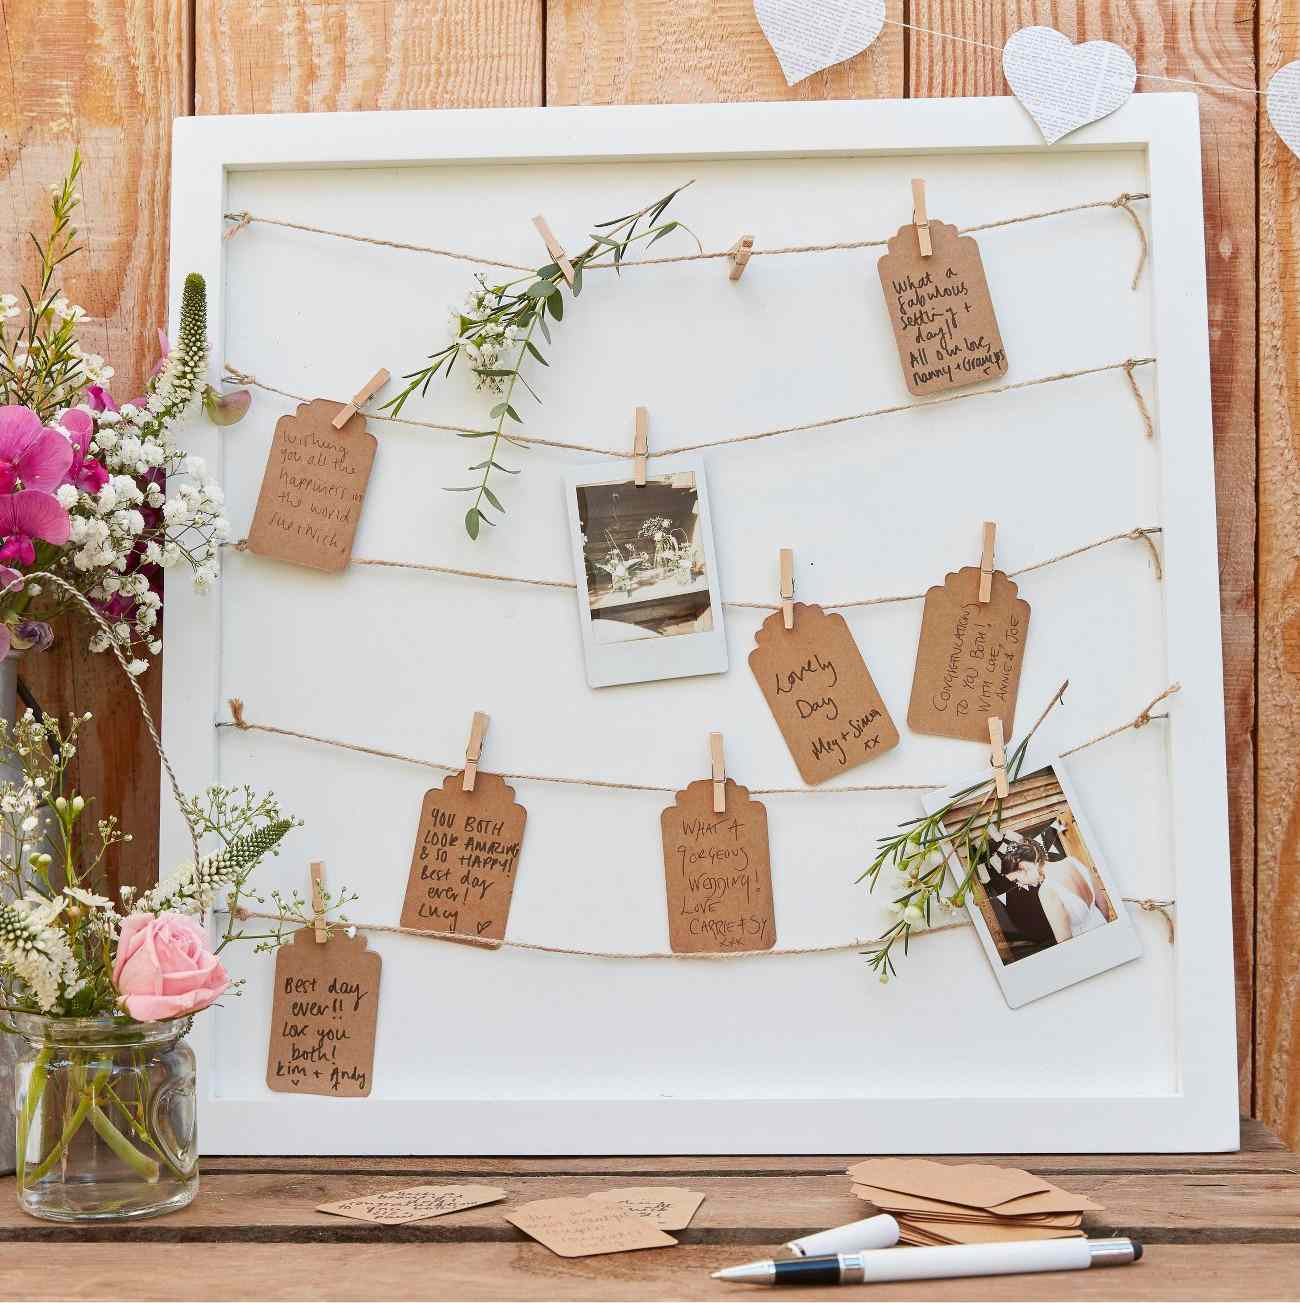 Frame with handwritten notes as wedding guest book